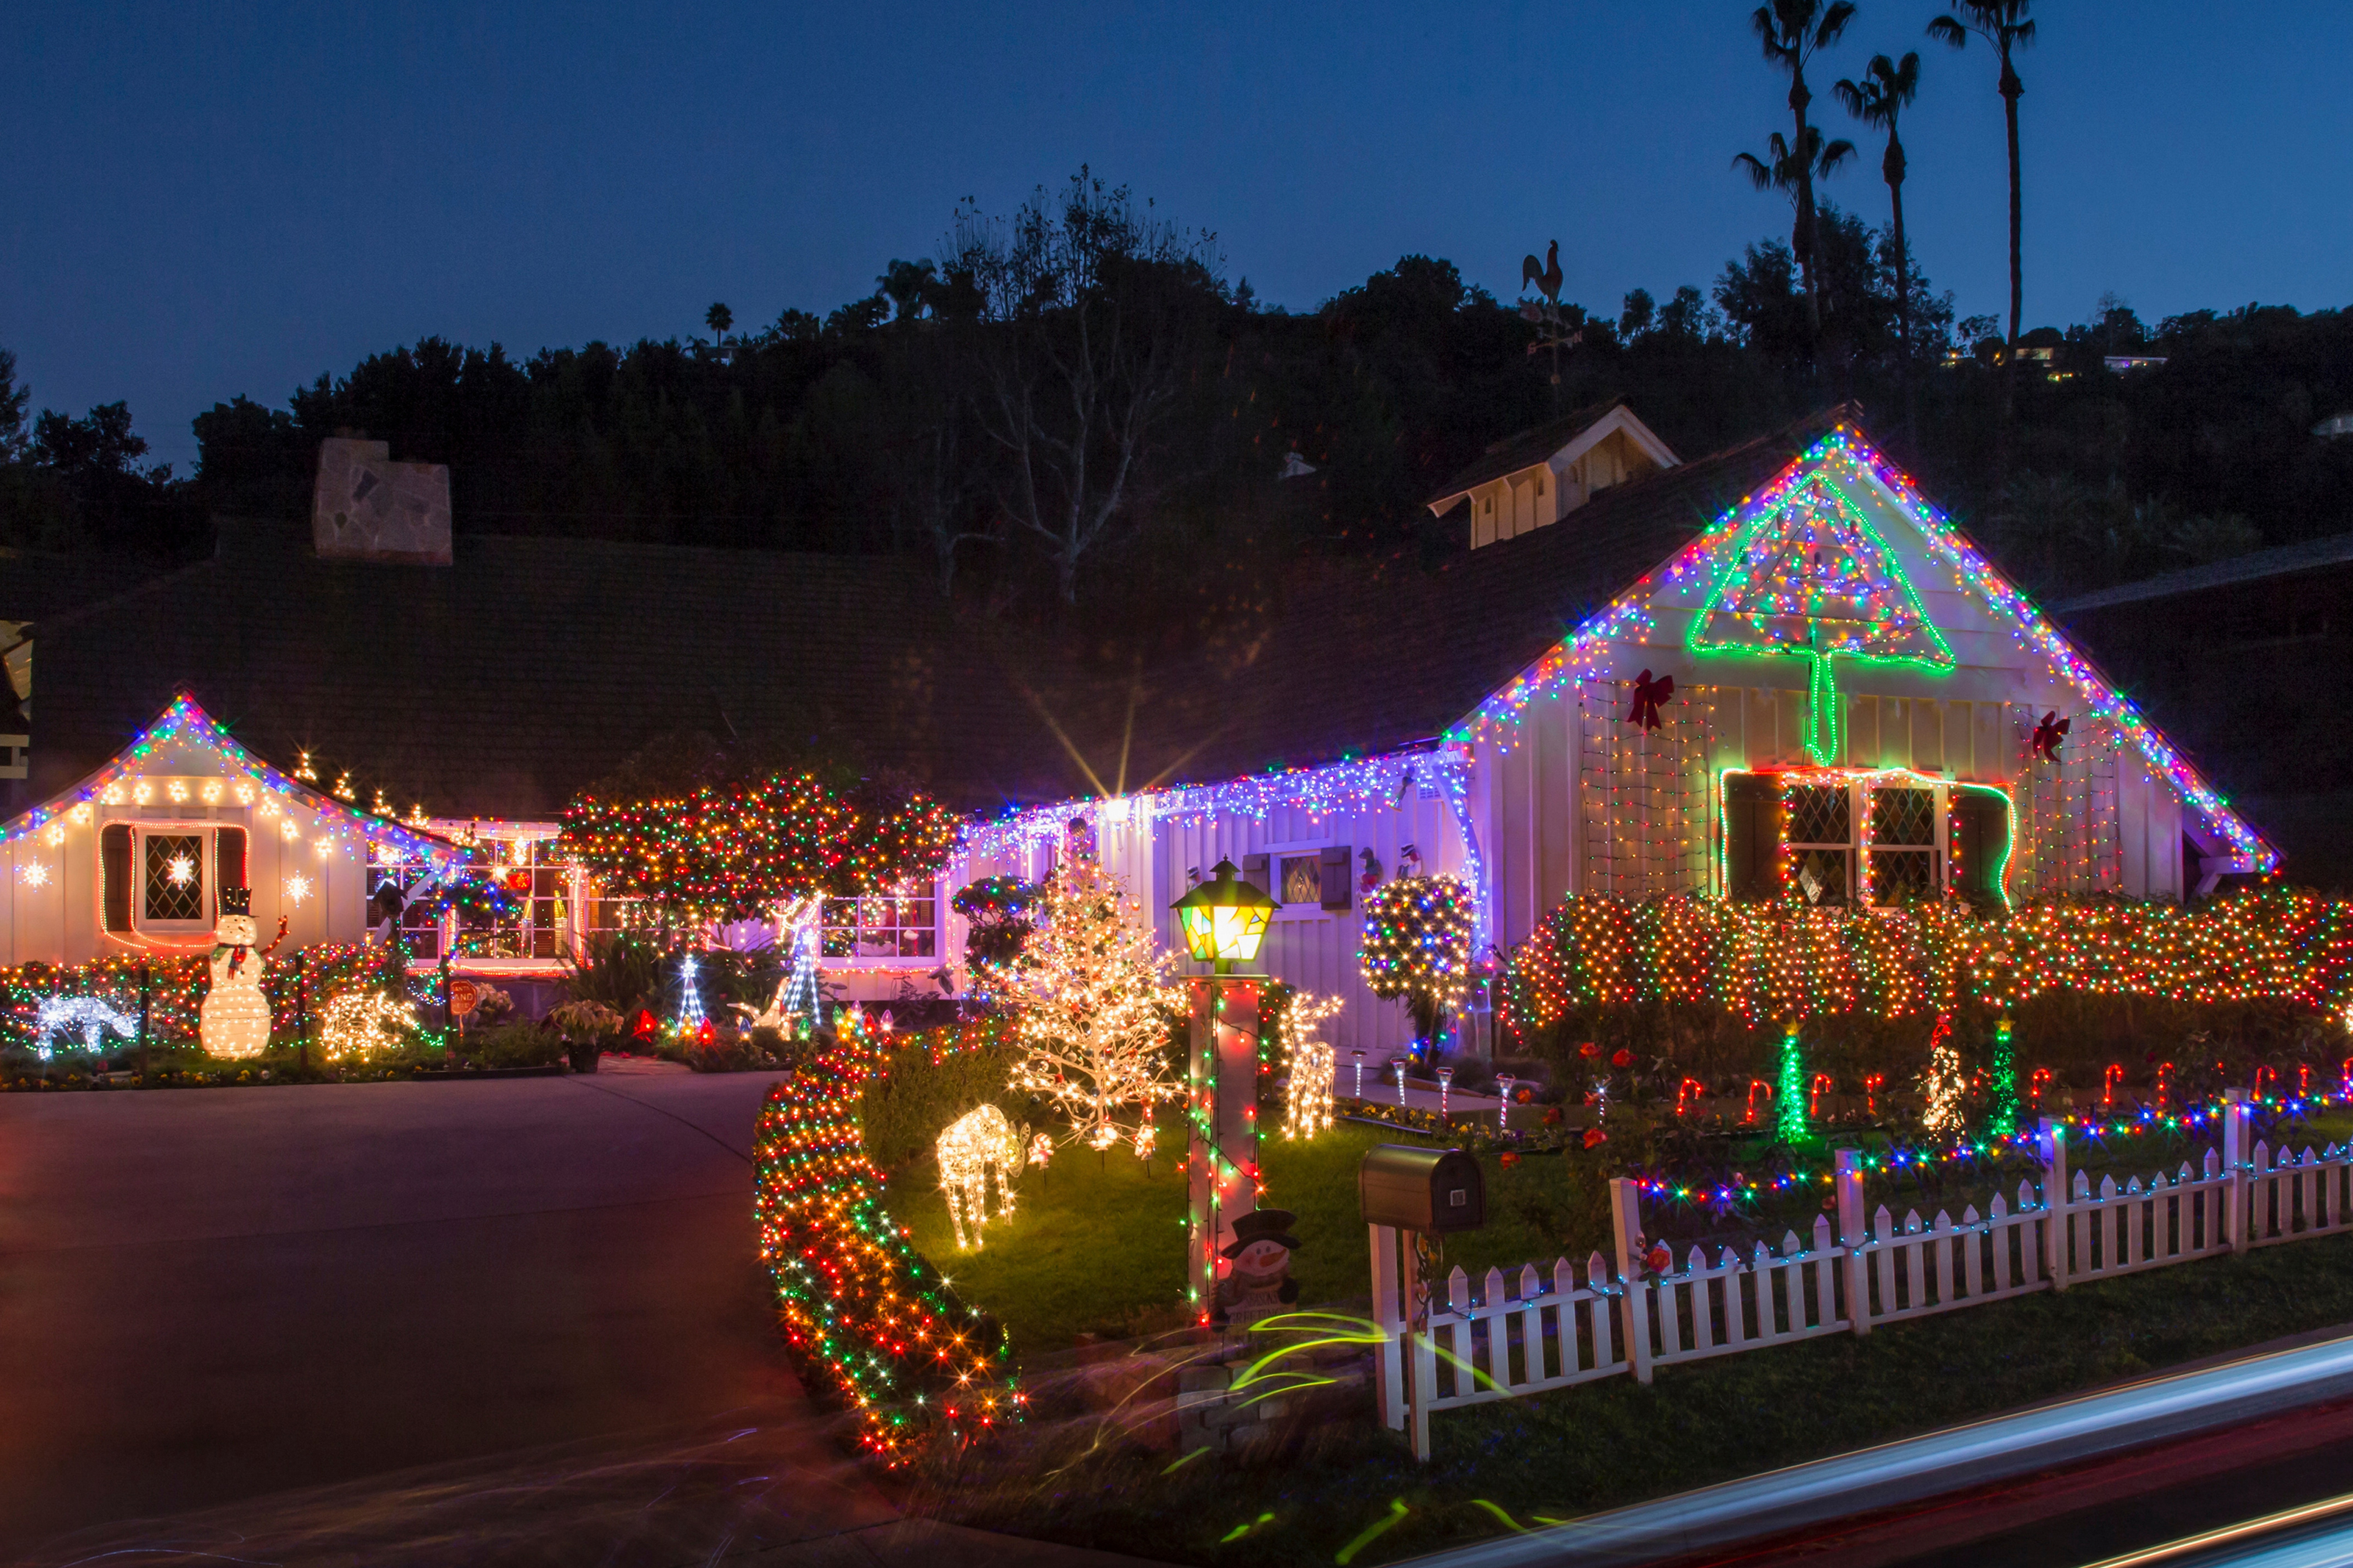 Brightly colored Christmas light display outside a home